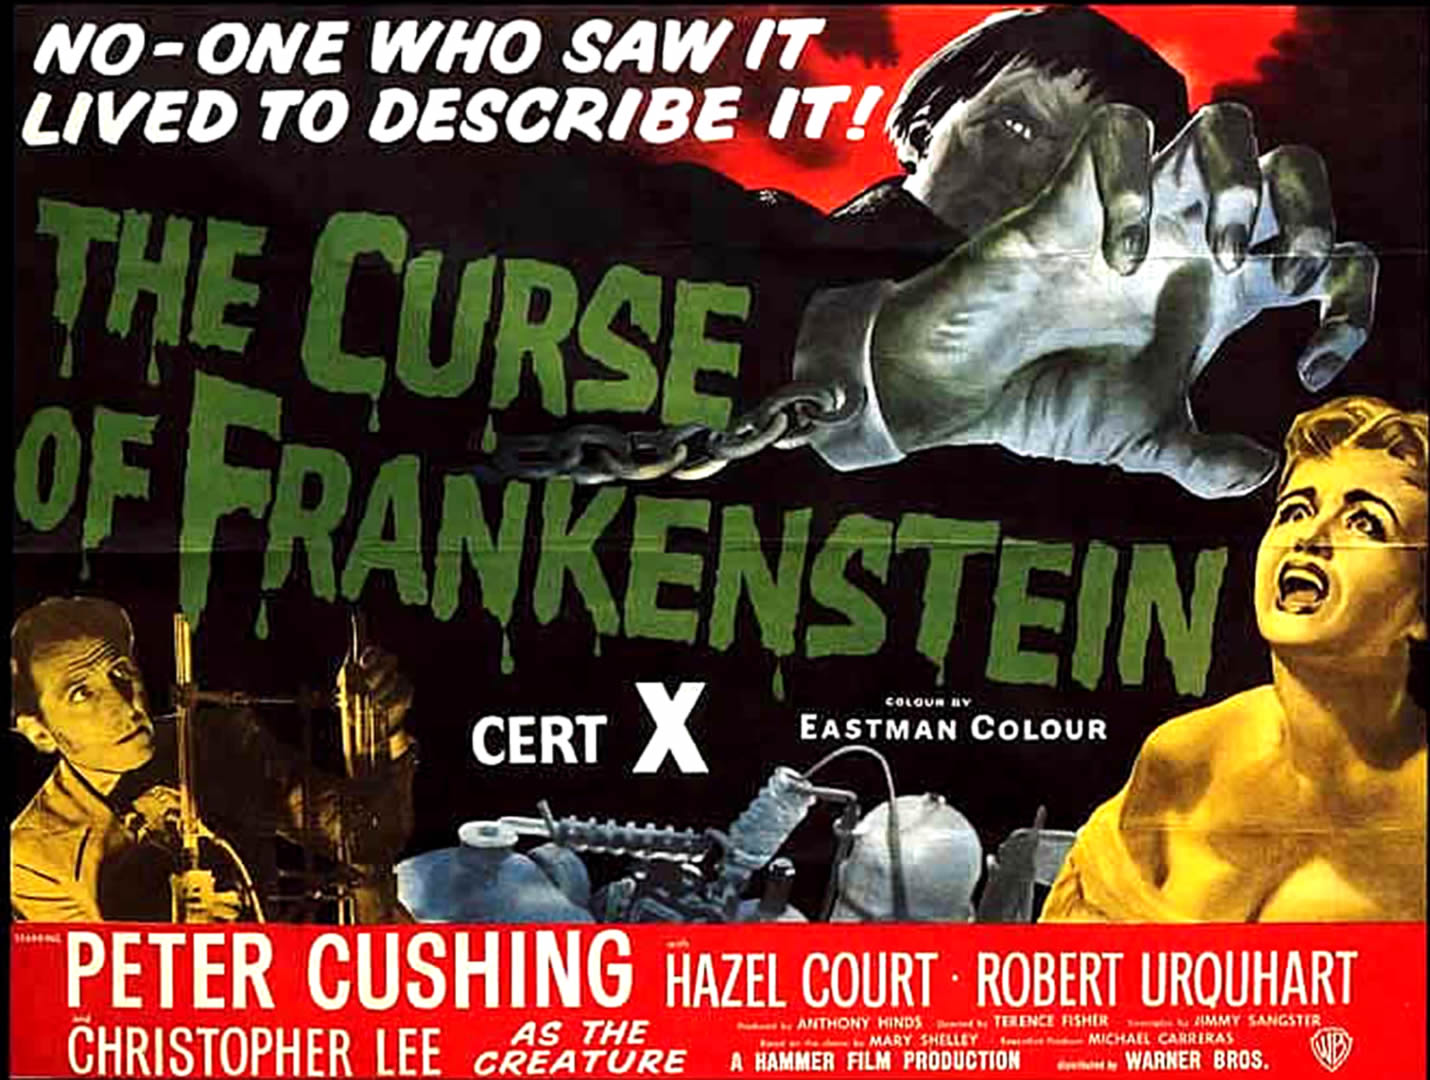 THE-CURSE-OF-FRANKENSTEIN